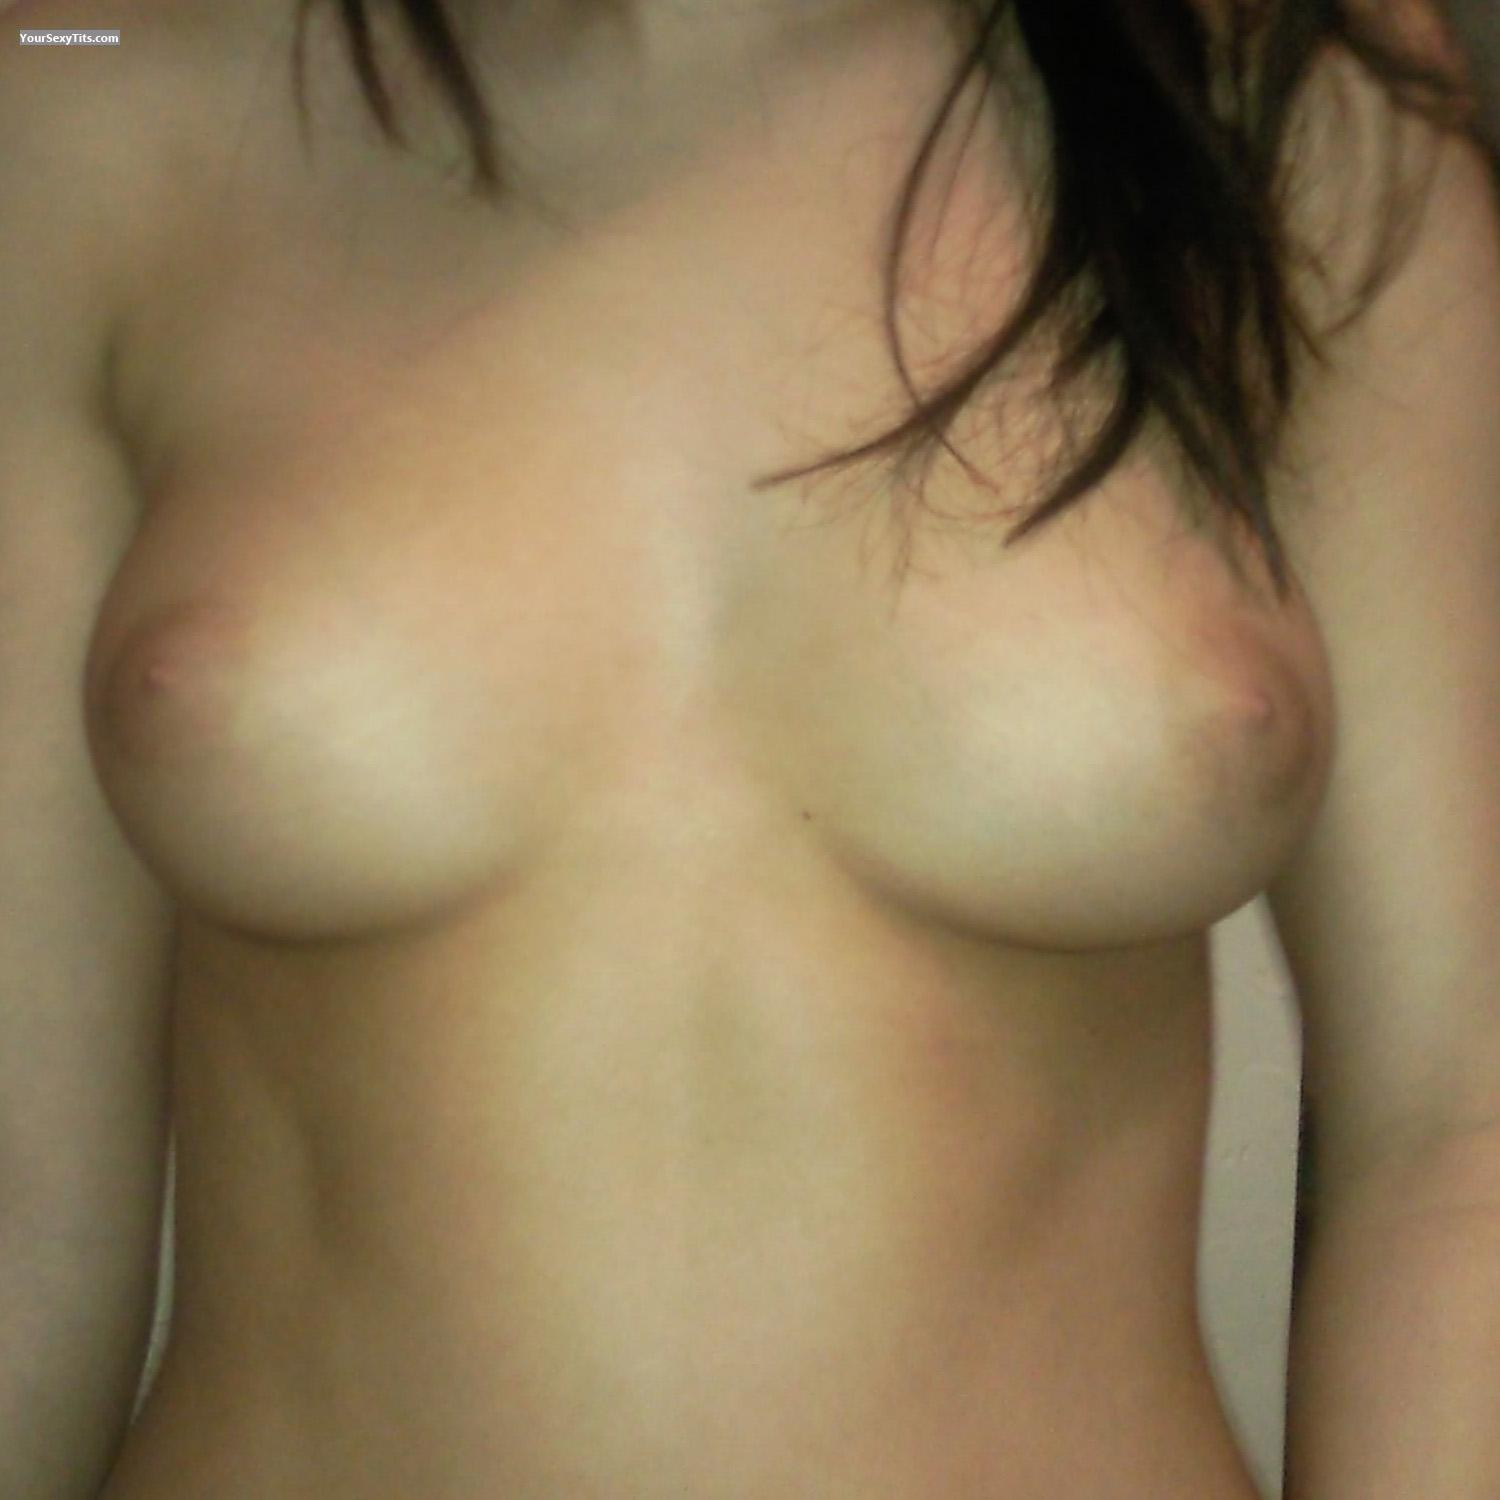 Tit Flash: Small Tits - Ndn Girl from Canada